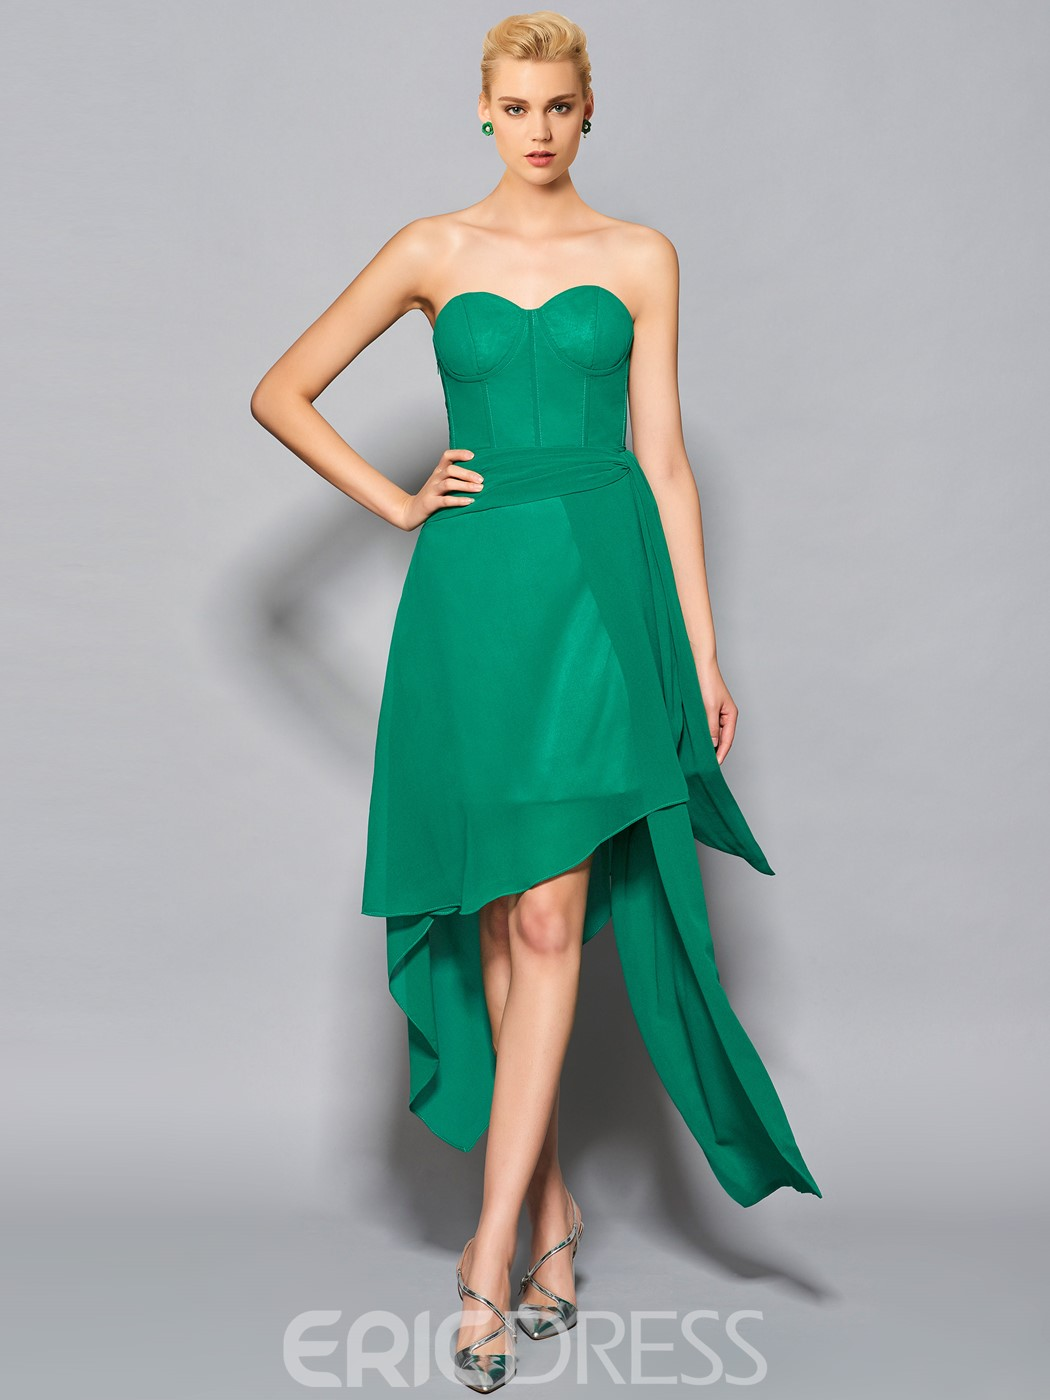 Ericdress Chic A Line Sweetheart Chiffon Asymmetry Cocktail Dress